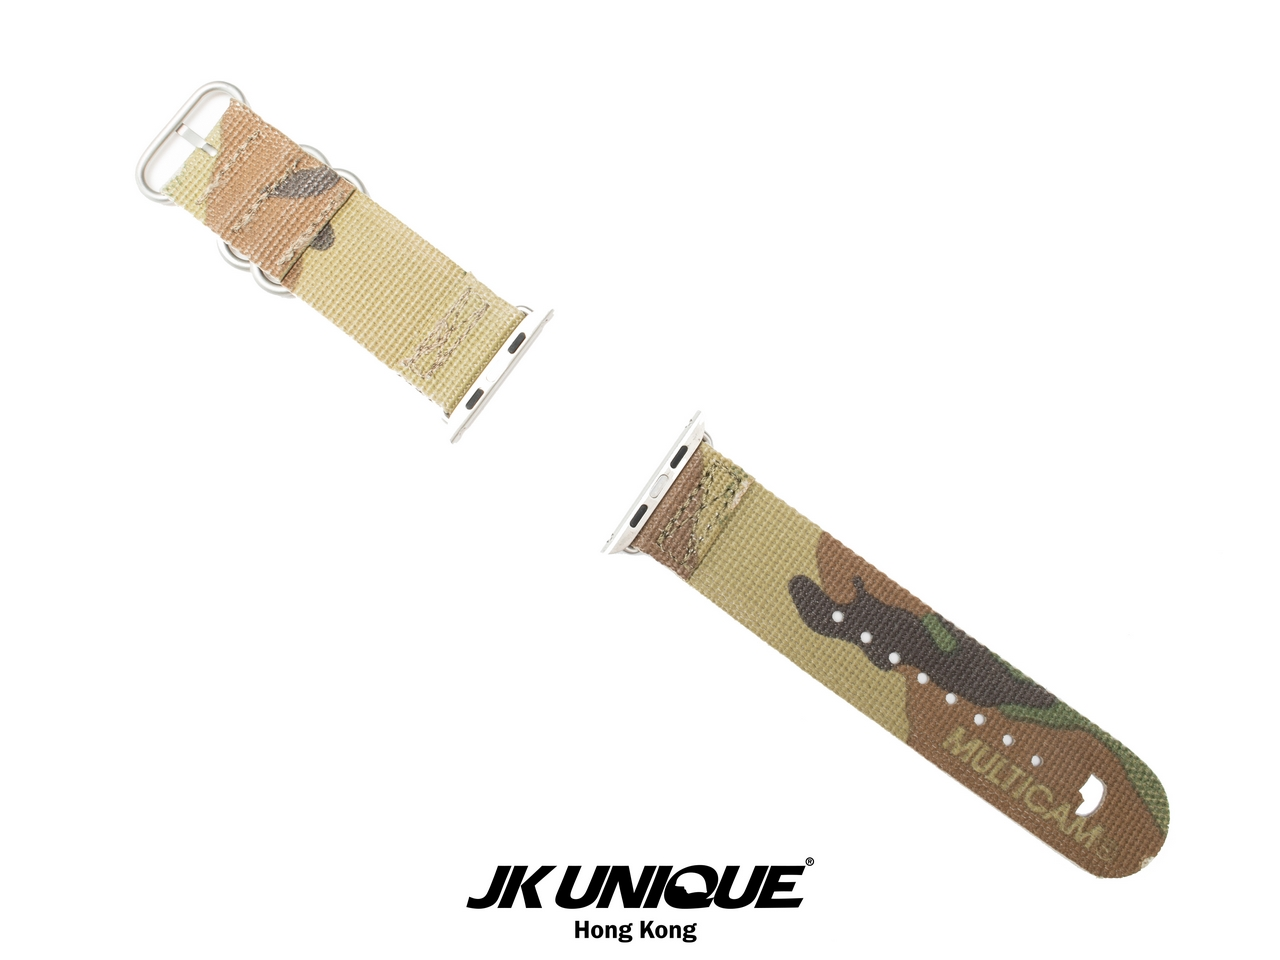 JK-UNIQUE-CAMO-NATO-Apple-Watch-Strap-42mm-SV-Multicam-2 (1280).jpg